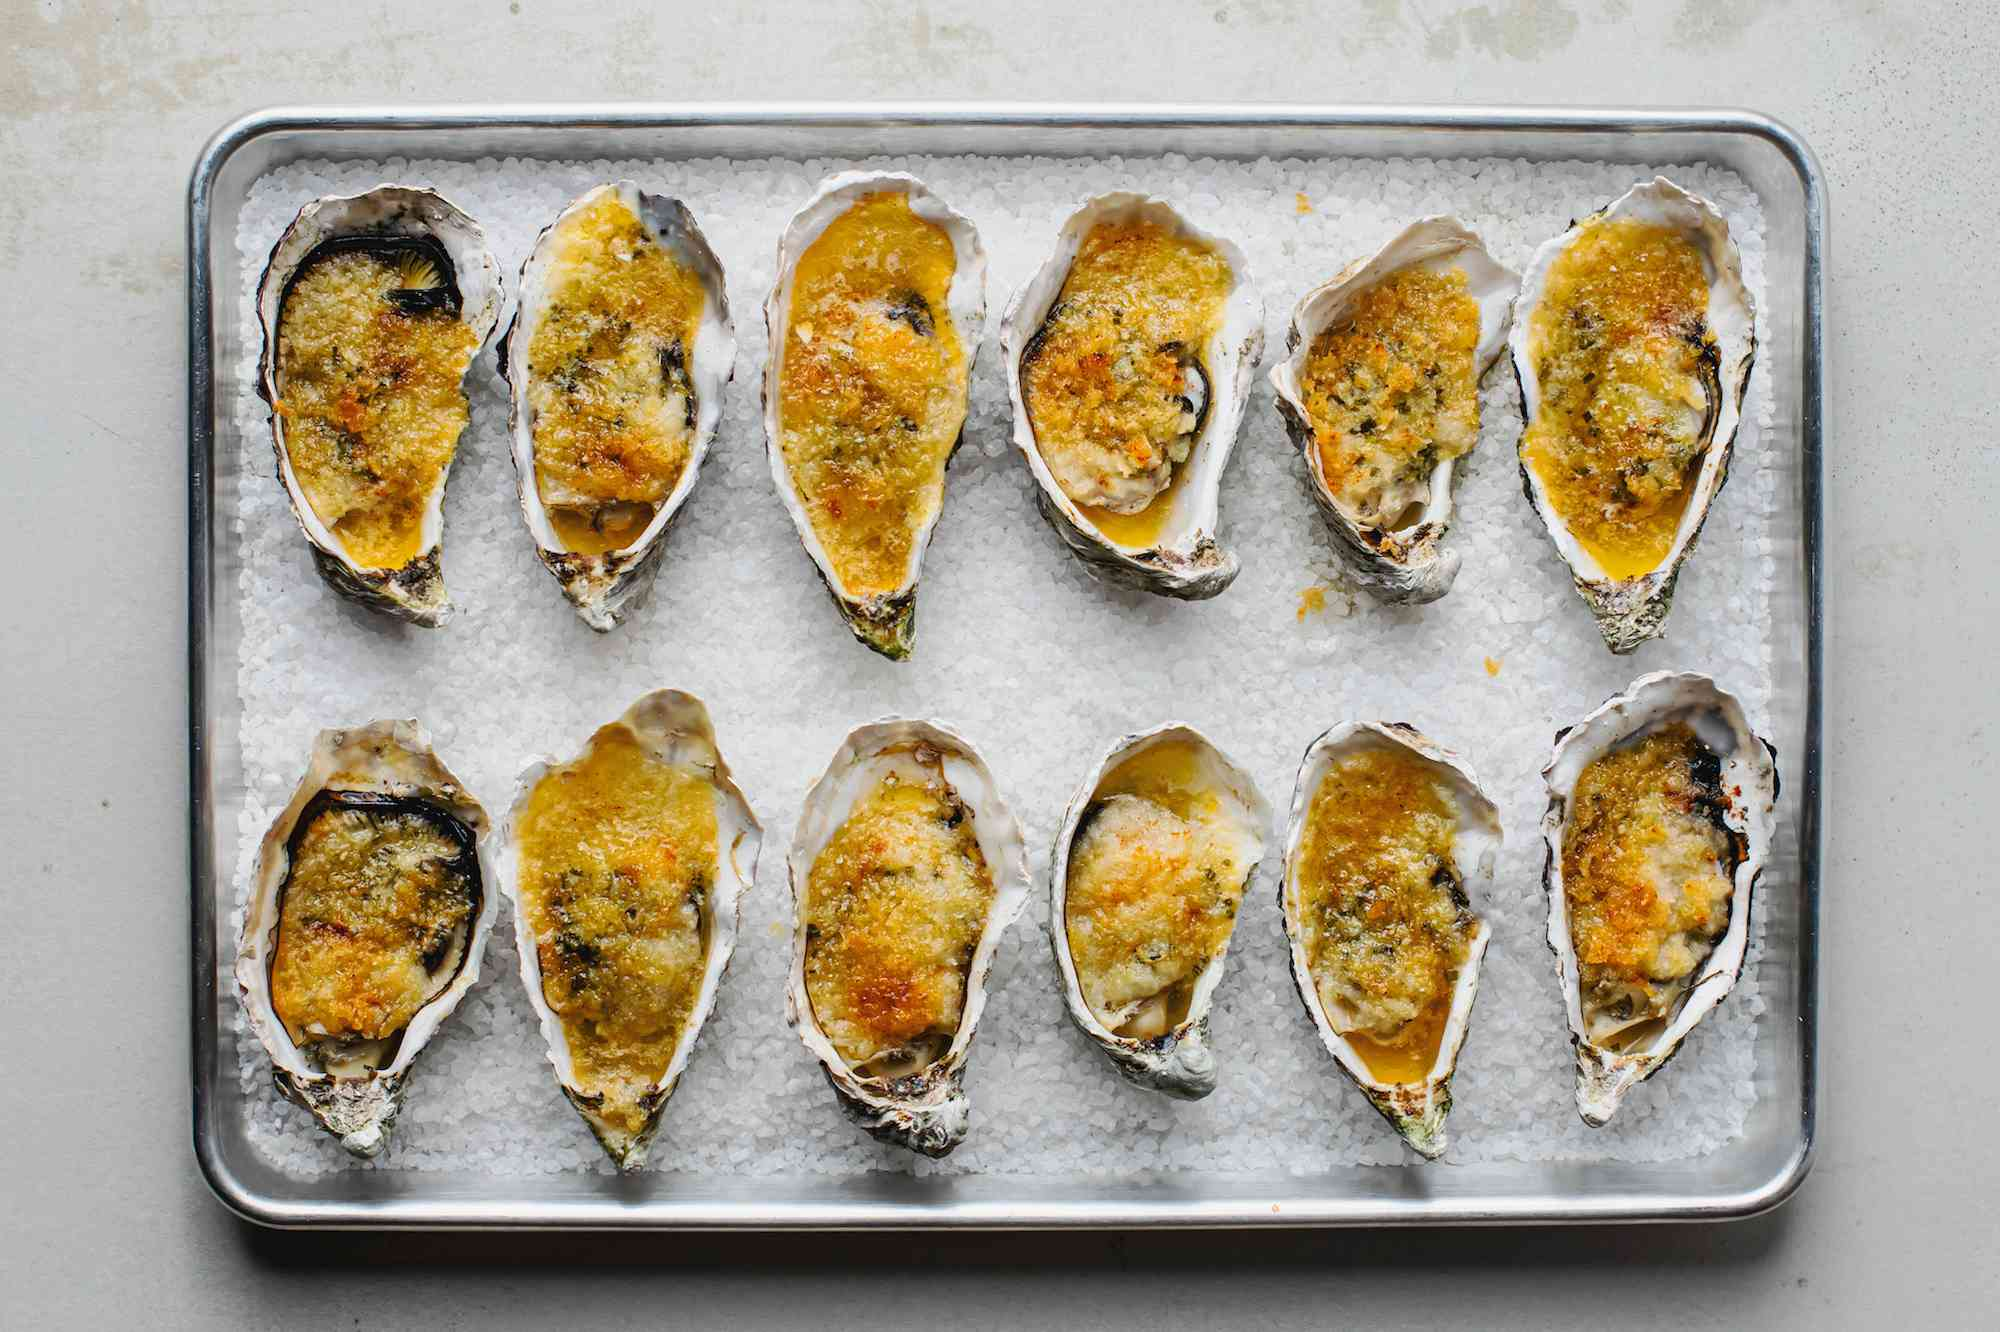 Baked oysters in the pan